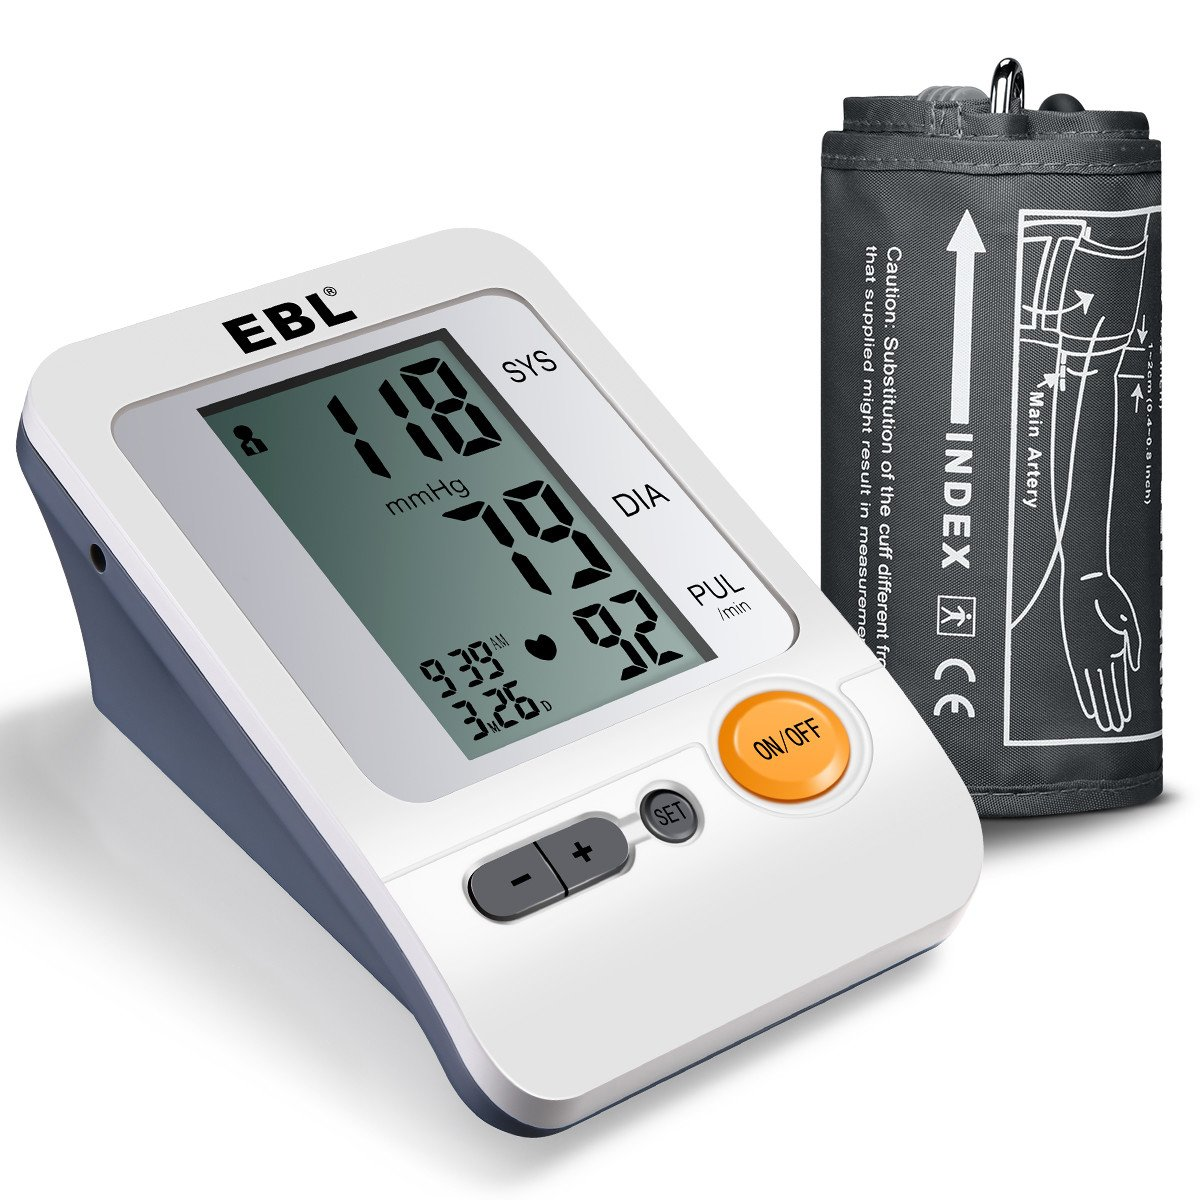 EBL Home Use Blood Pressure Monitor with Storage Bag